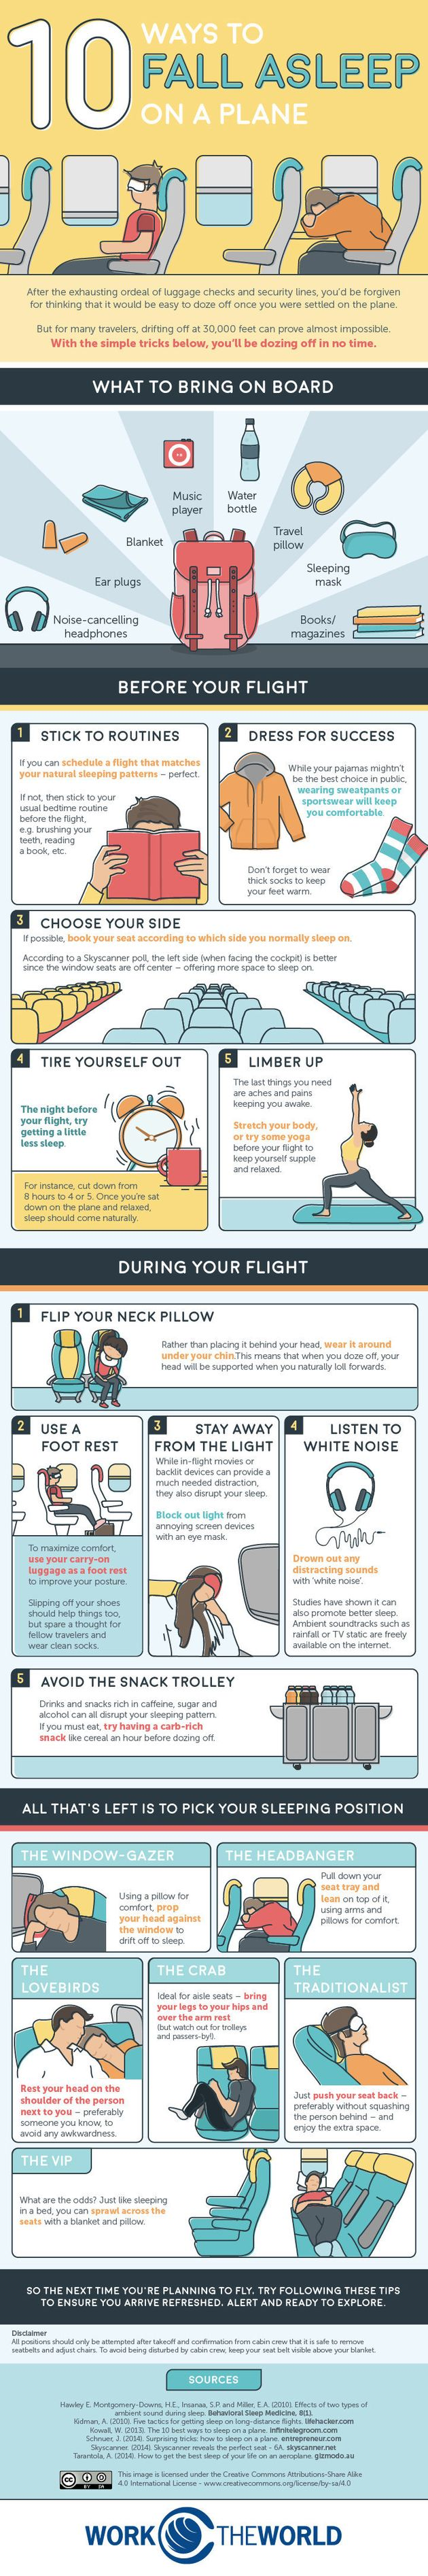 life hacks for air travel